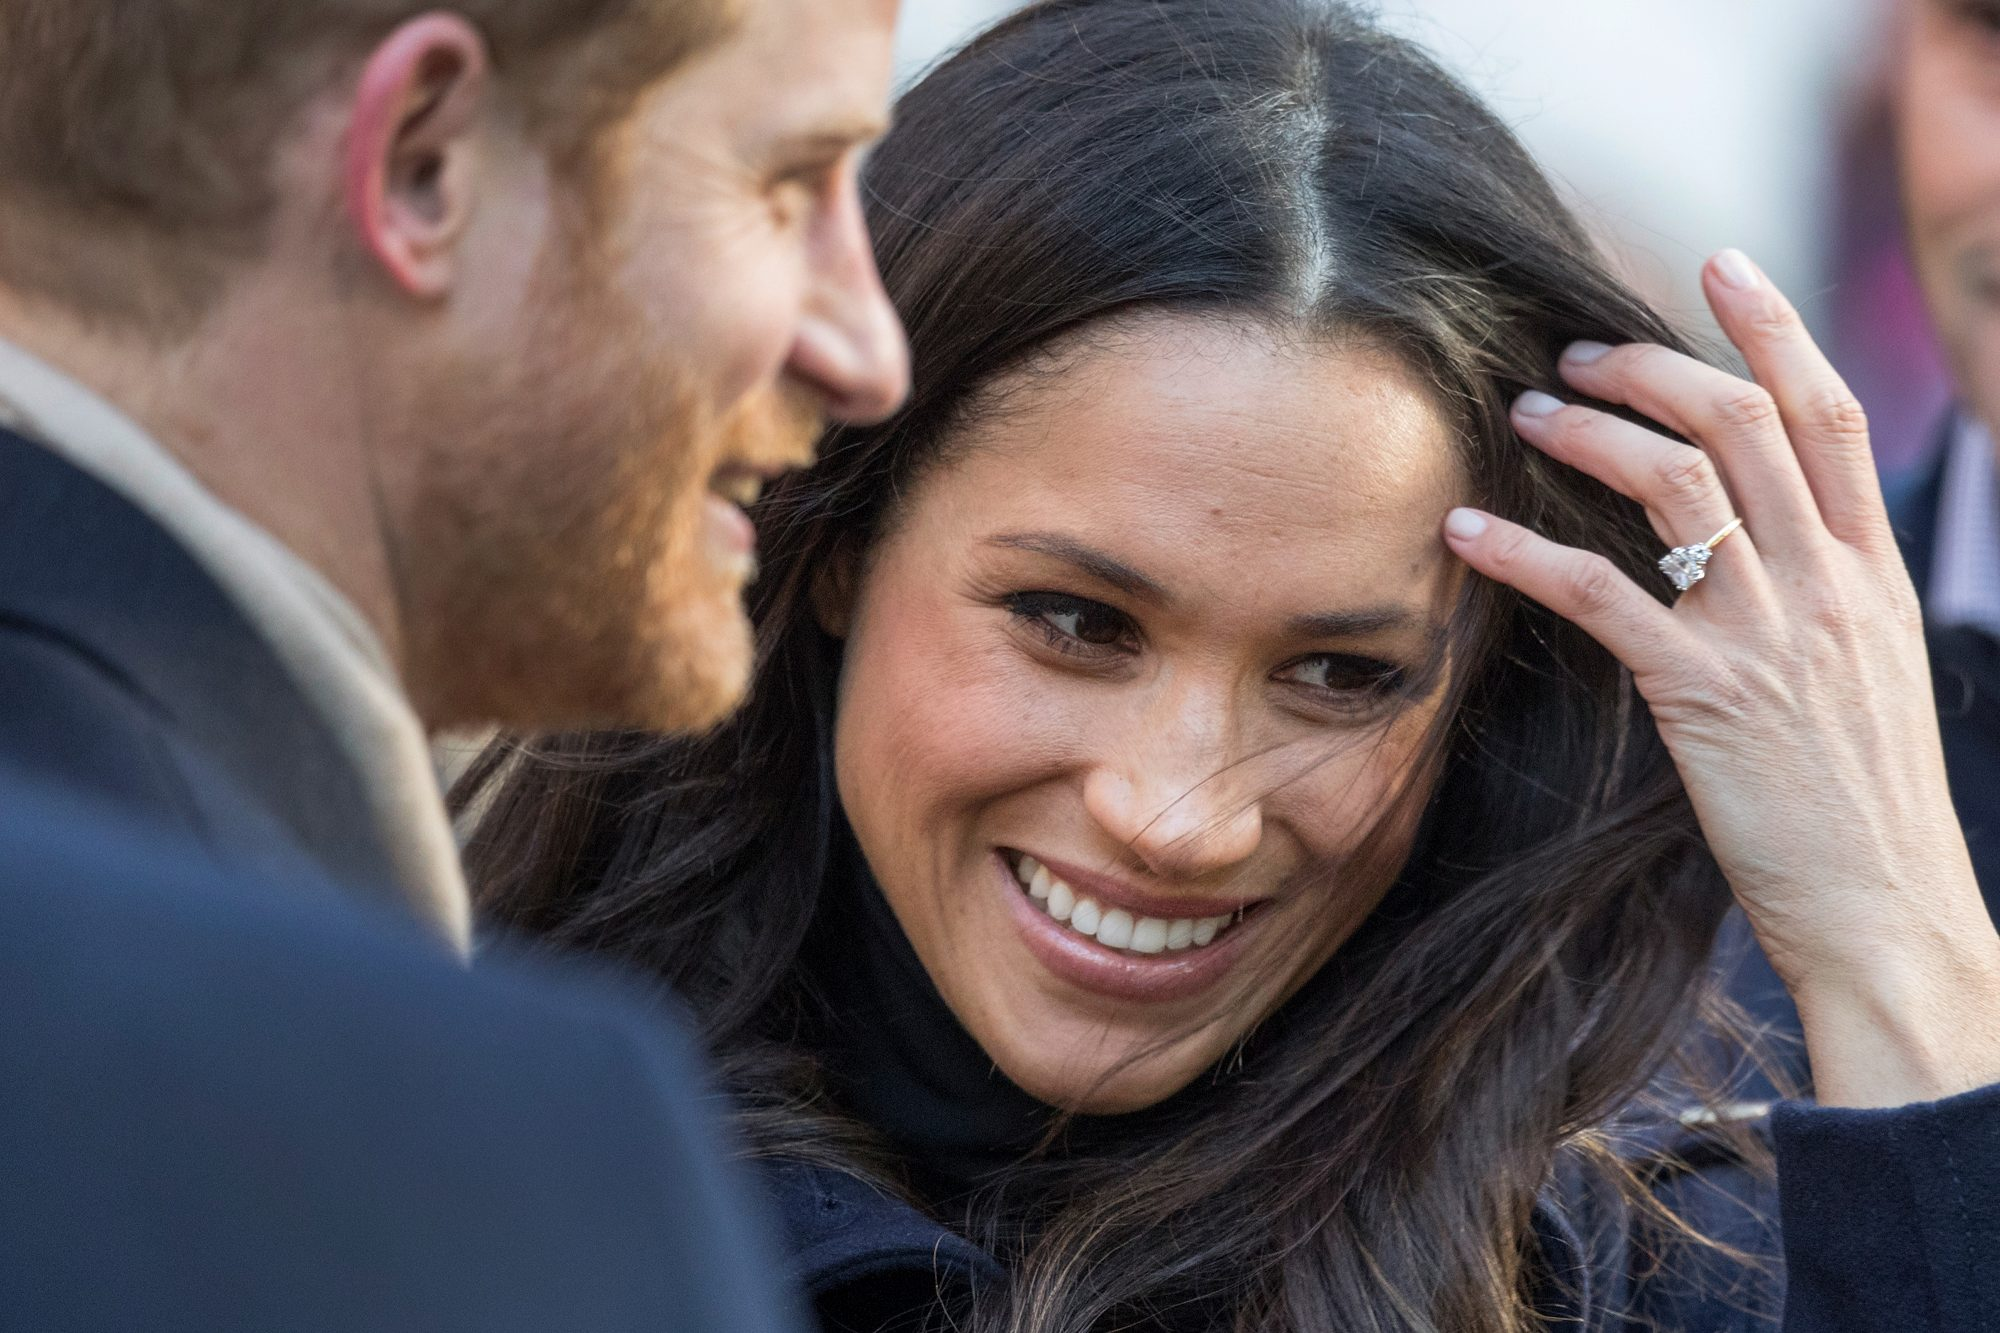 It's Time! Watch the Livestream of Meghan Markle and Prince Harry's Big Royal Wedding